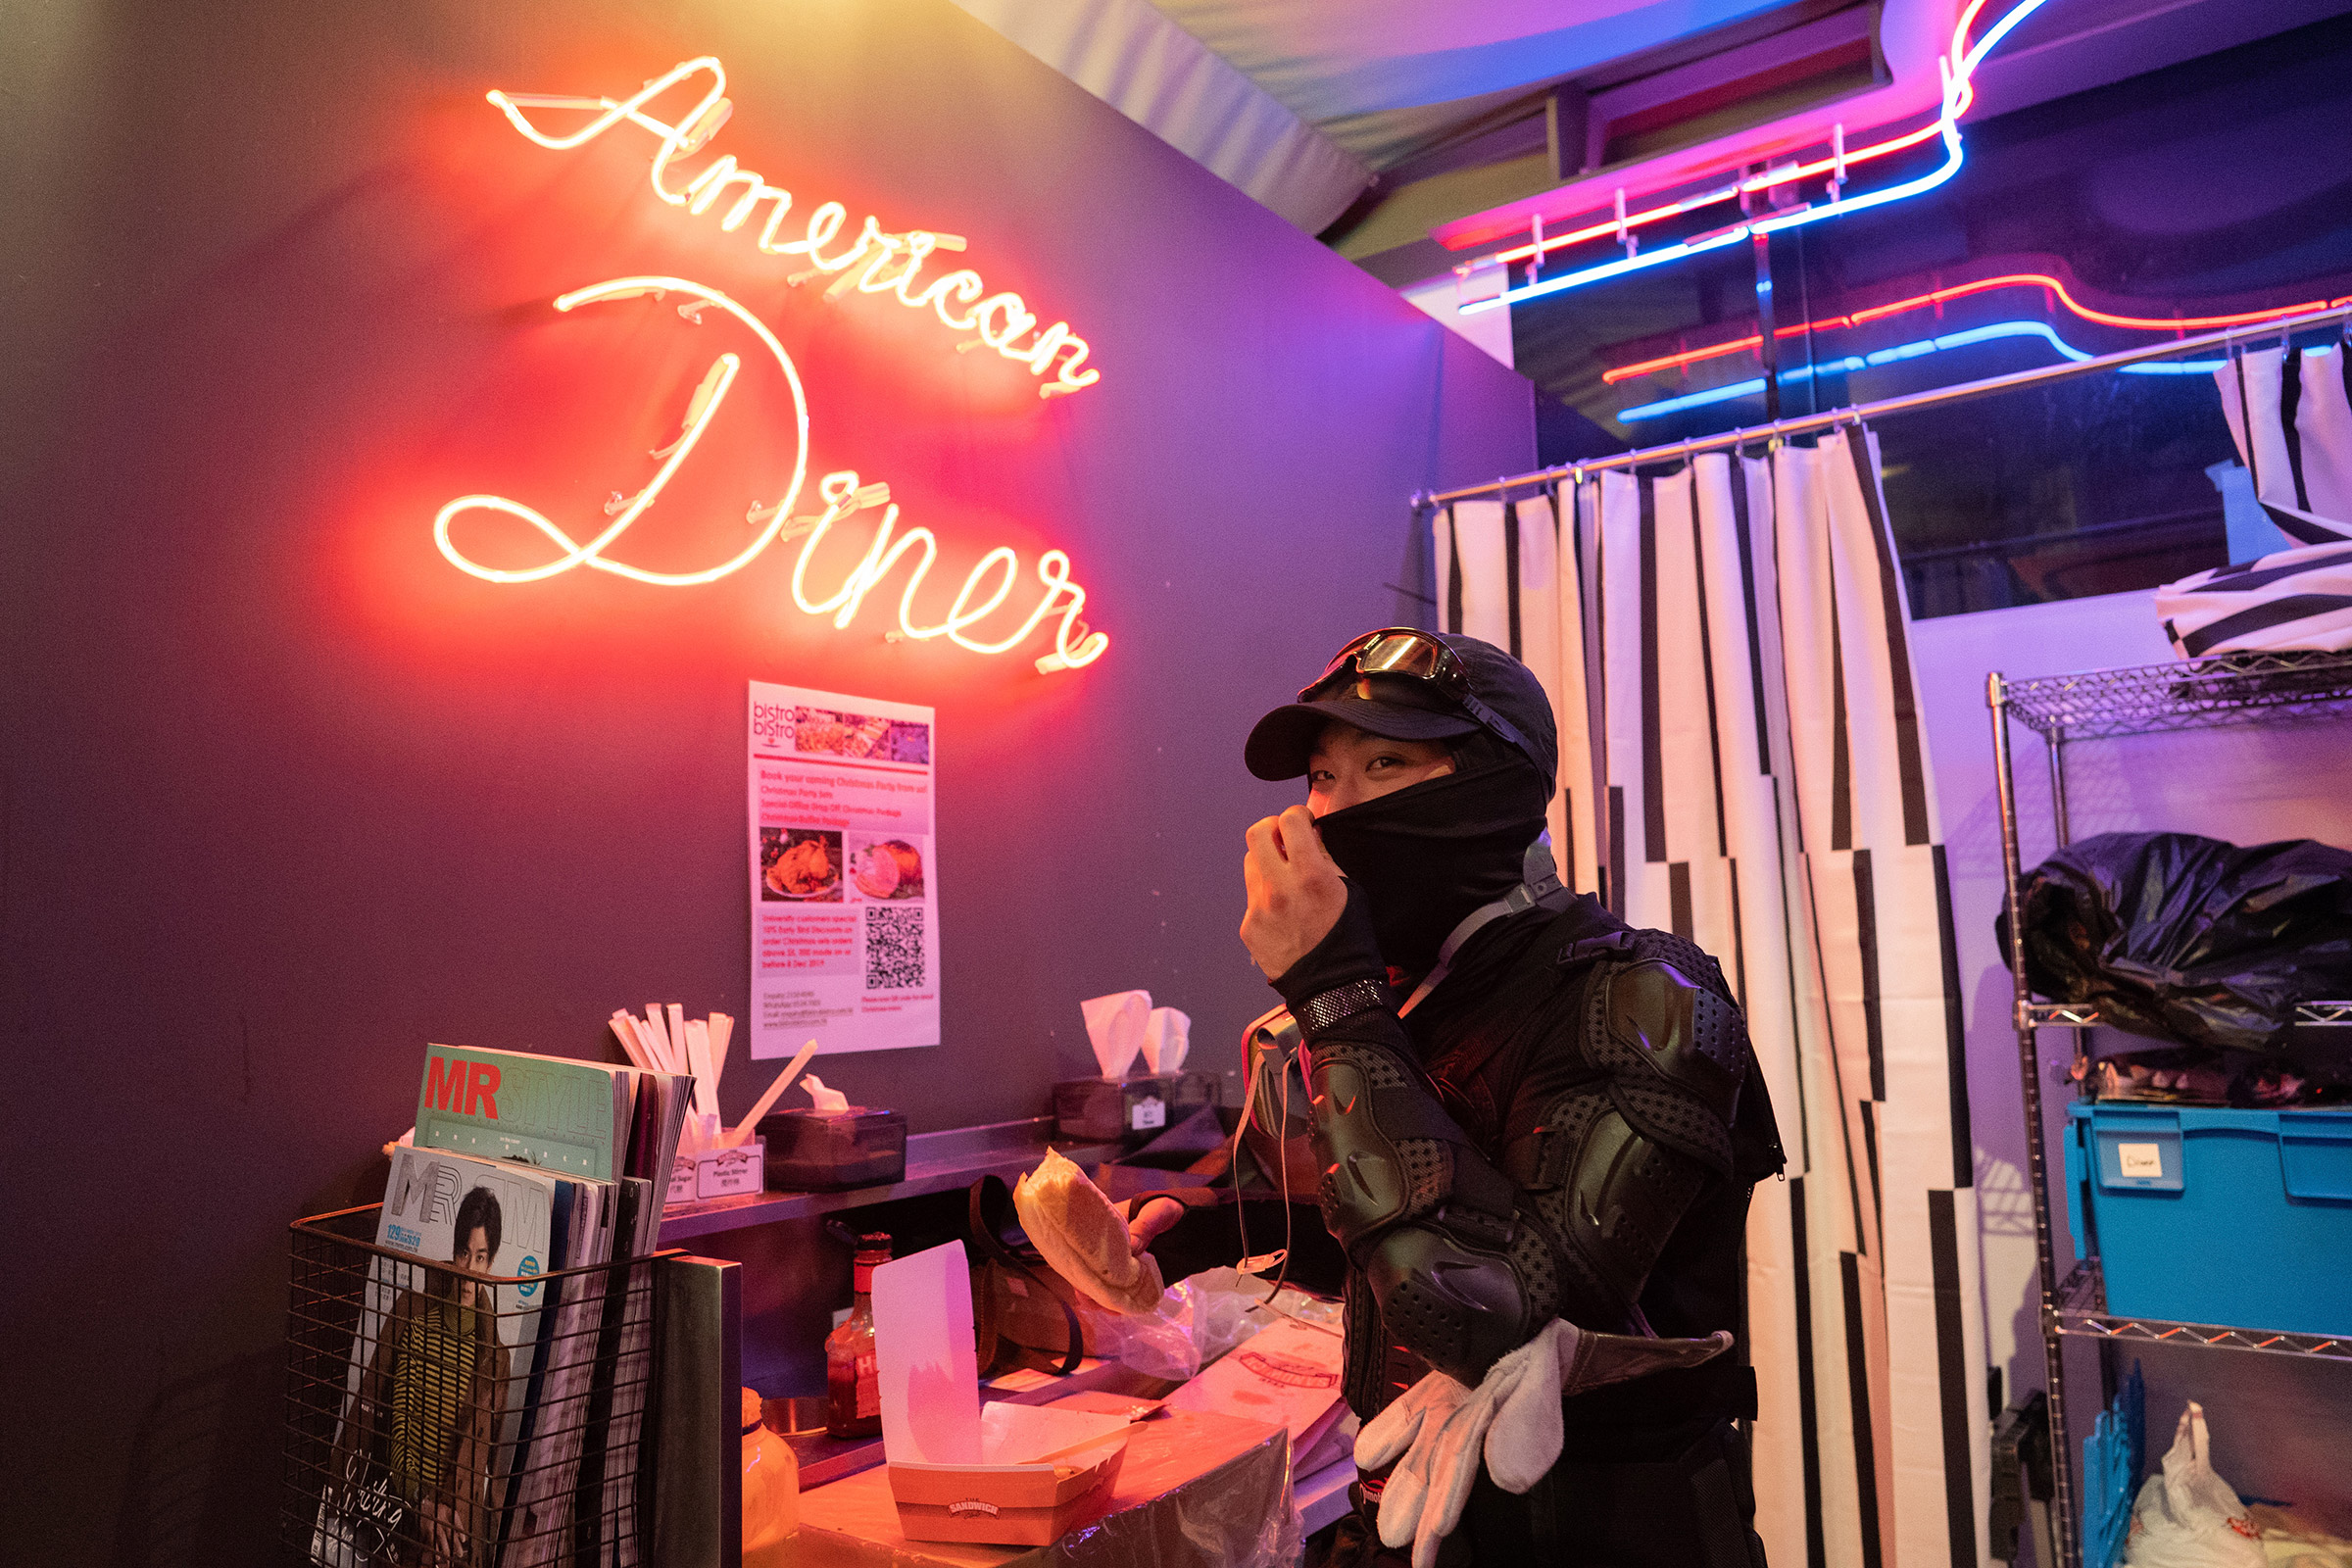 A frontline protestor eats a late-night hot dog at the  American Diner  on the Polytechnic University campus, Nov. 15, 2019.